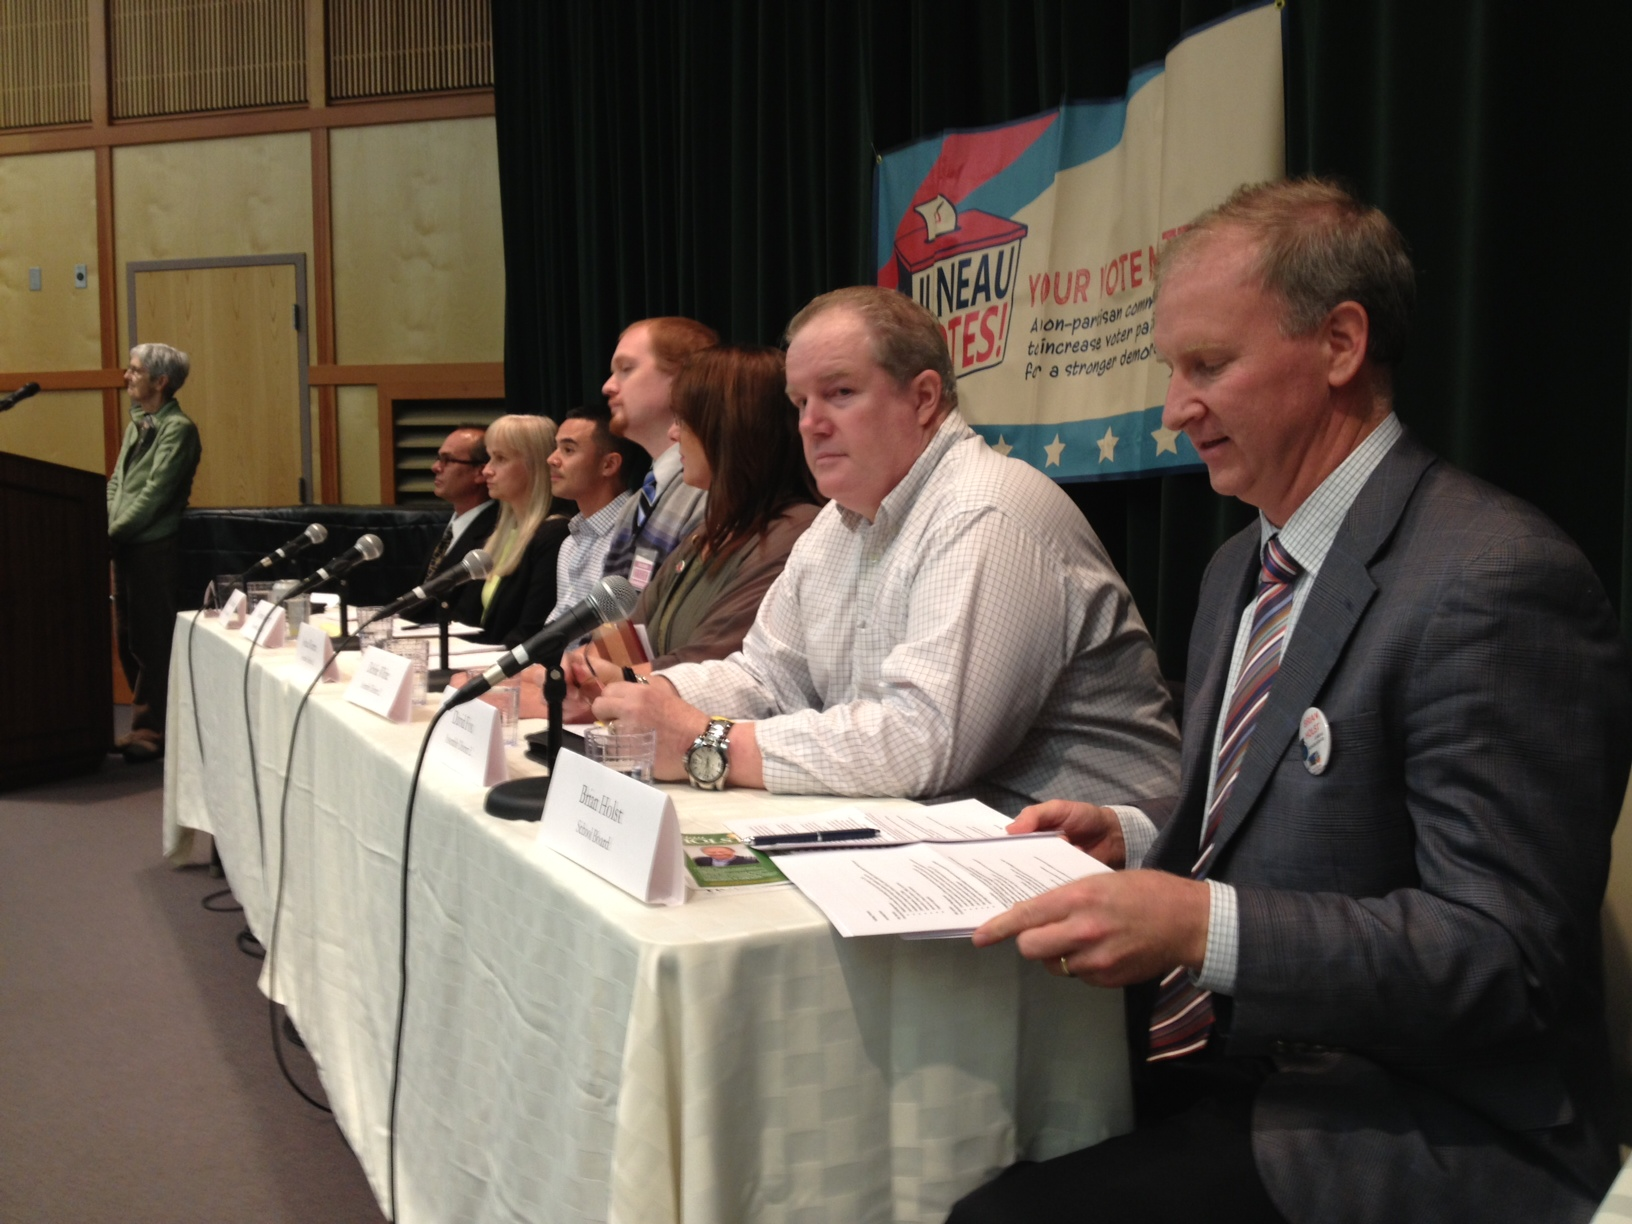 Six Juneau Assembly candidates and one school board candidate participated in a Juneau Votes Forum at UAS Wednesday. (Photo by Lisa Phu/KTOO)